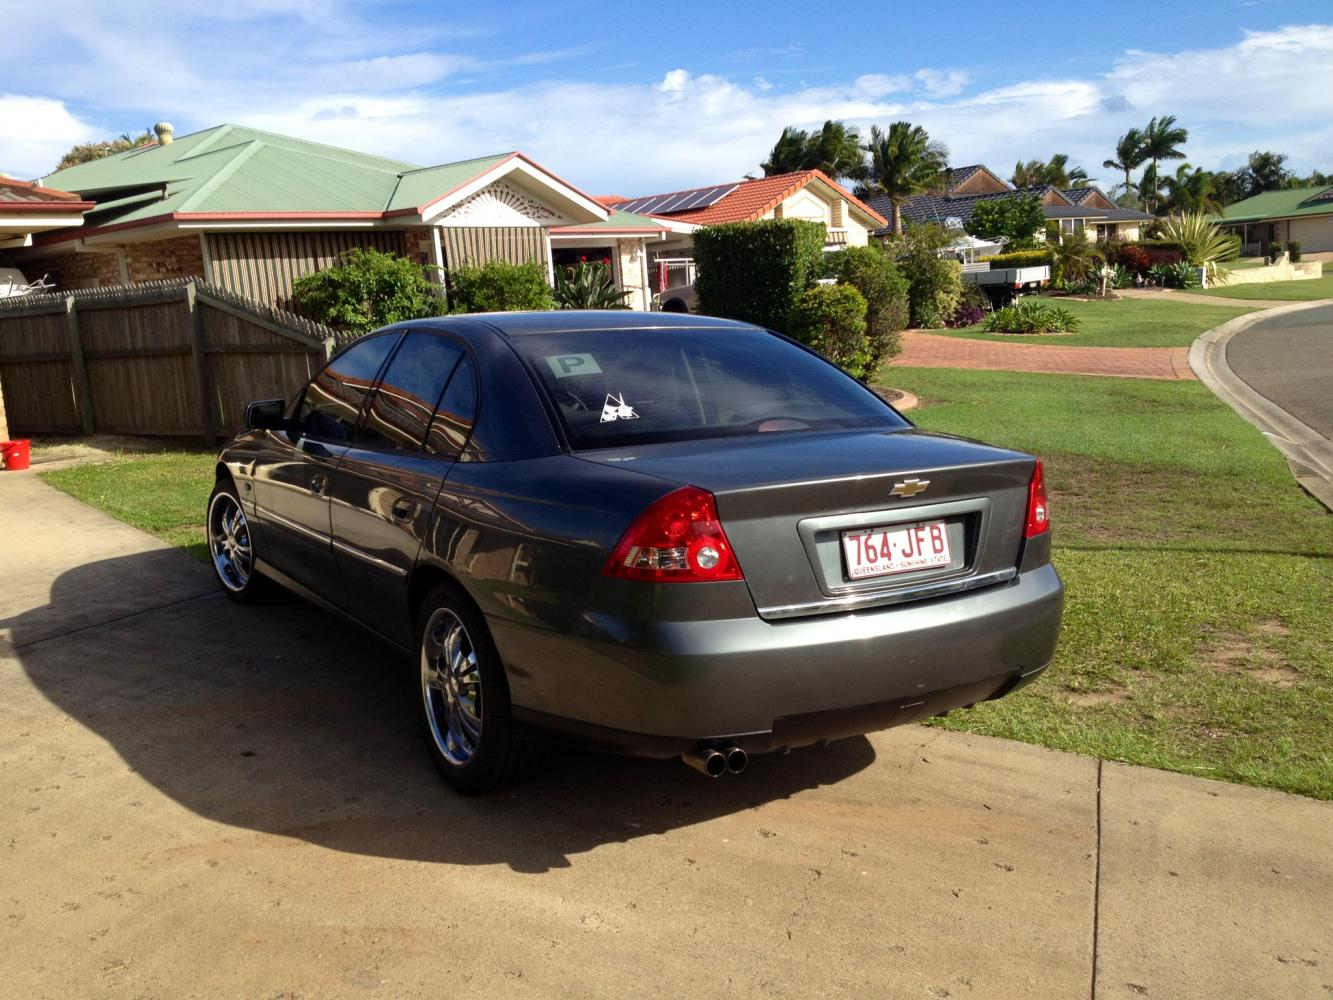 Qld v6 vy series 2 commodore just commodores 2003 holden commodore executive vy ii sedan private cars for sale in qld carsales vanachro Gallery